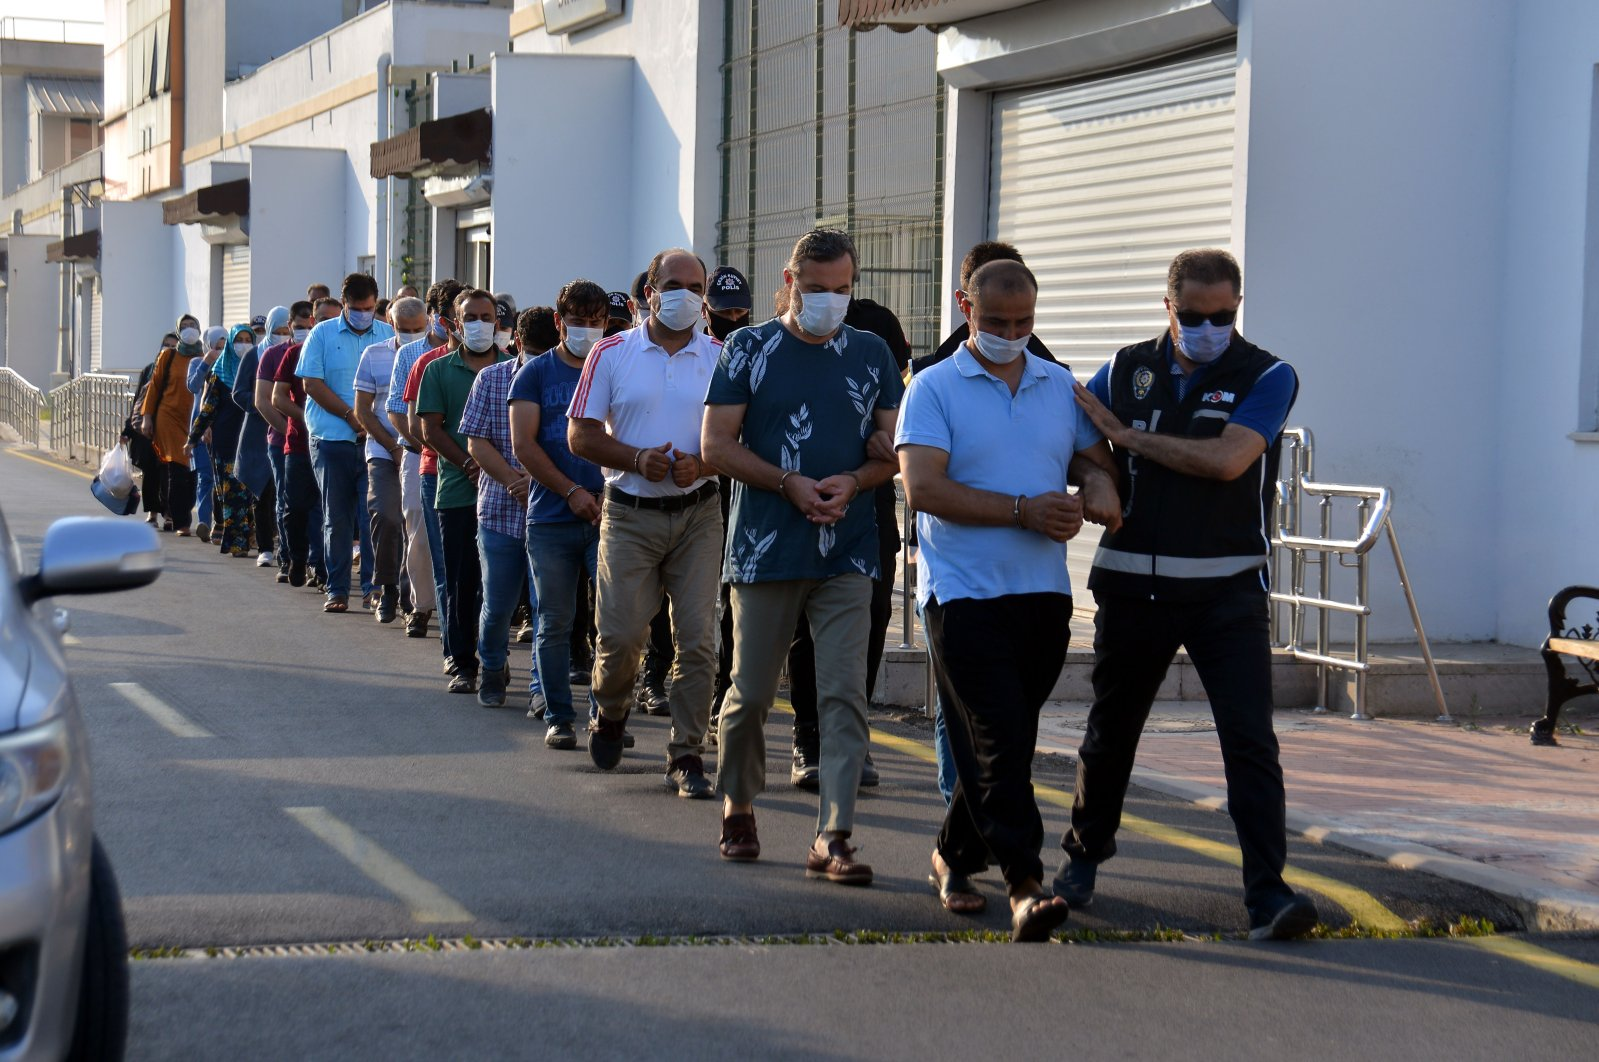 Police escort suspects captured in an operation against FETÖ, in Adana, southern Turkey, July 15, 2020. (DHA Photo)